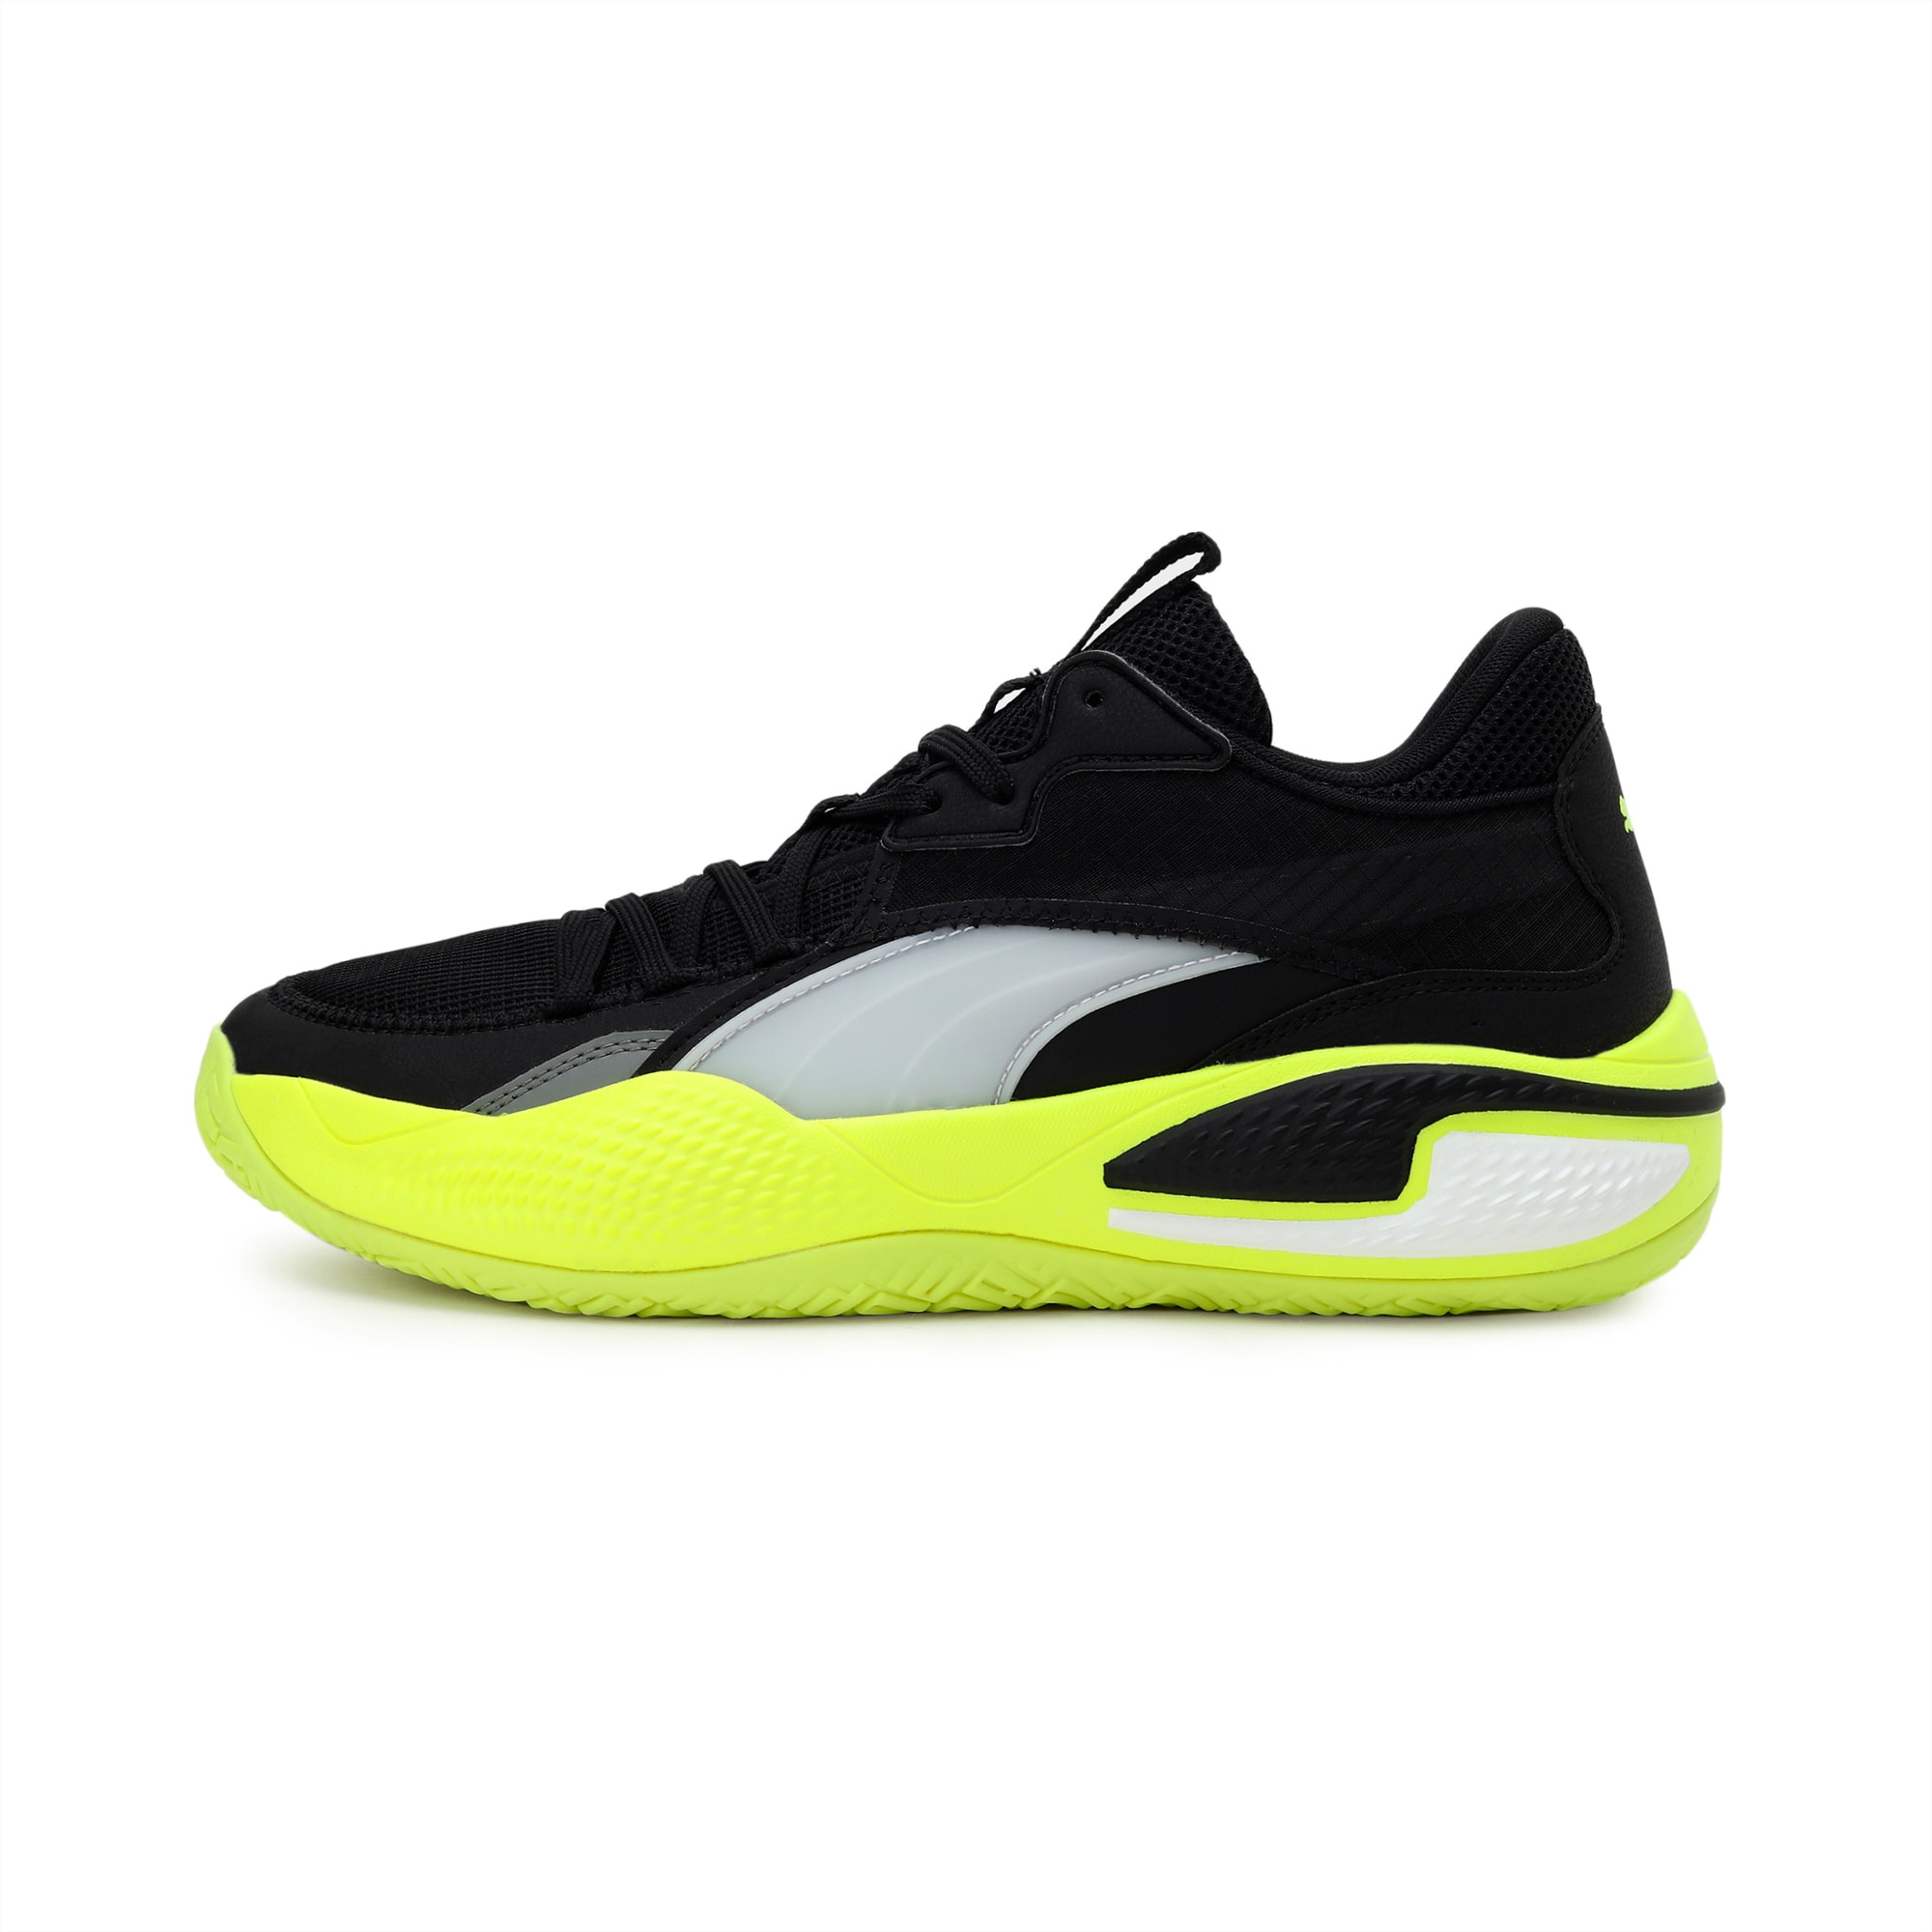 Court Rider Basketball Shoes